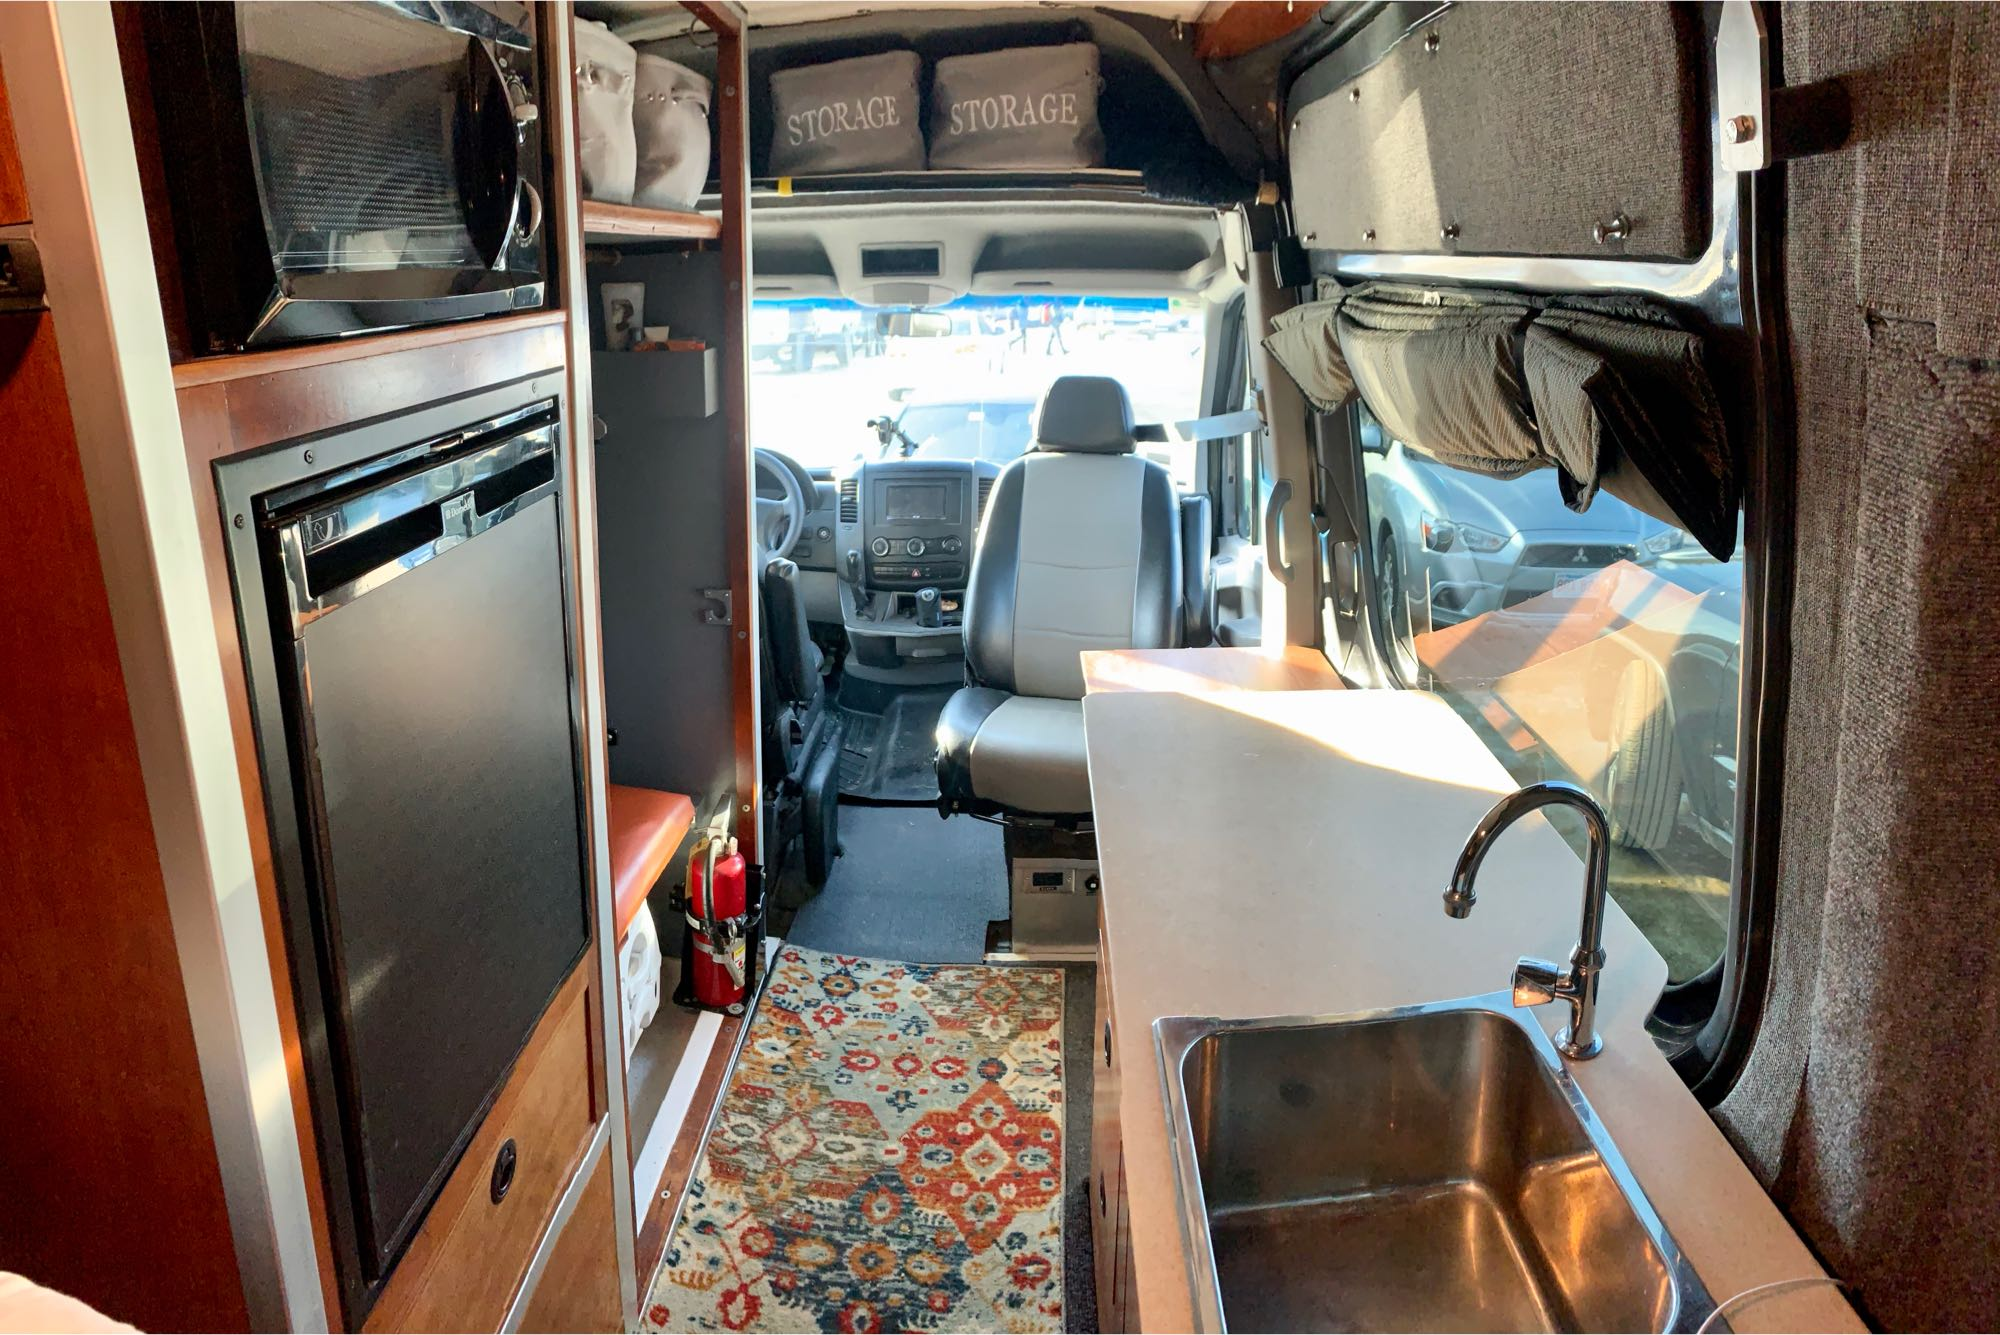 View from the bed looking forward. Mercedes-Benz Sprinter 2008